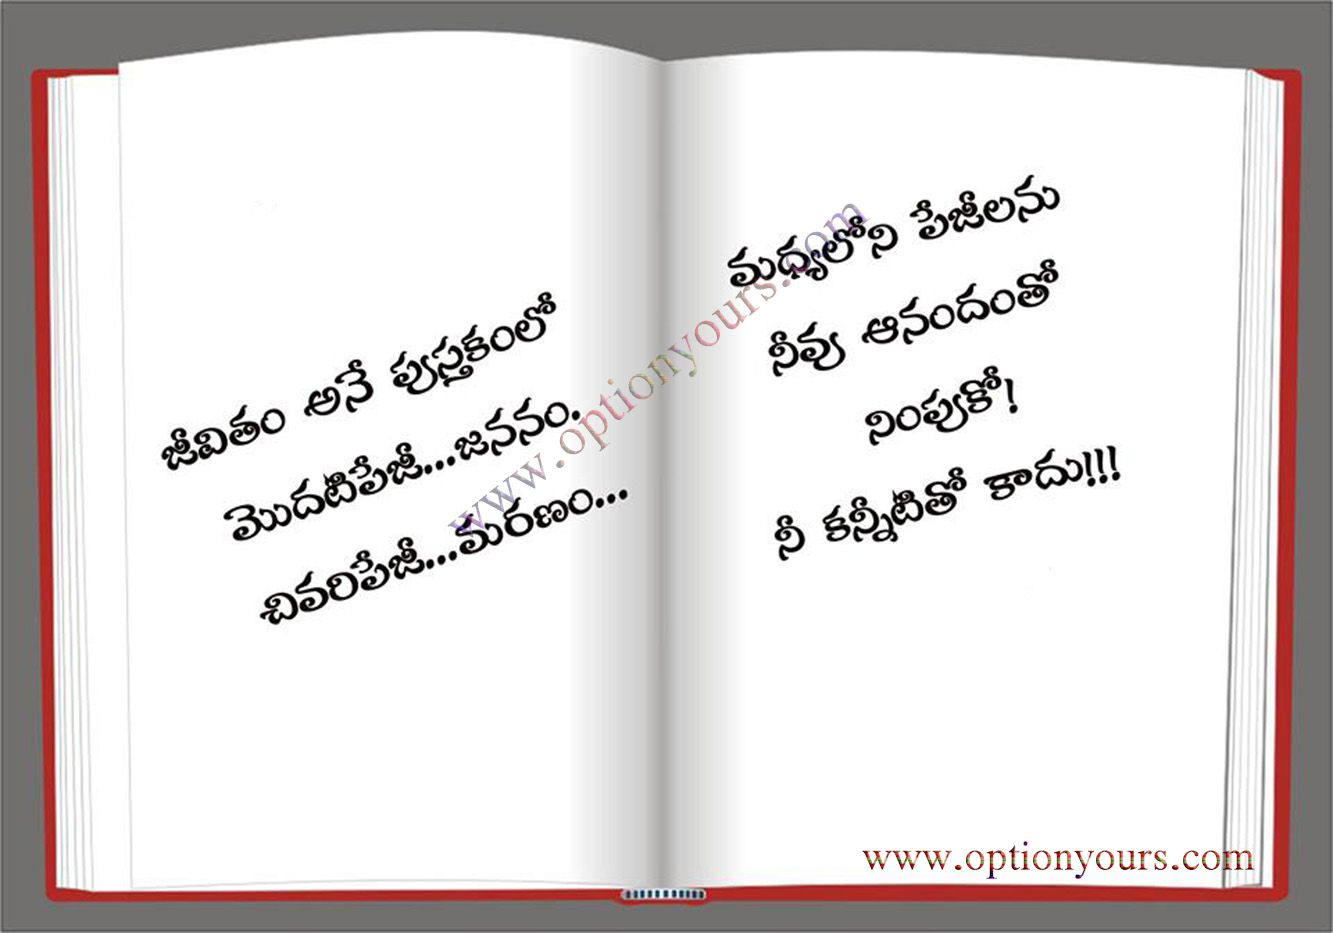 All Amma quotes and Telugu heart touching and Inspirational